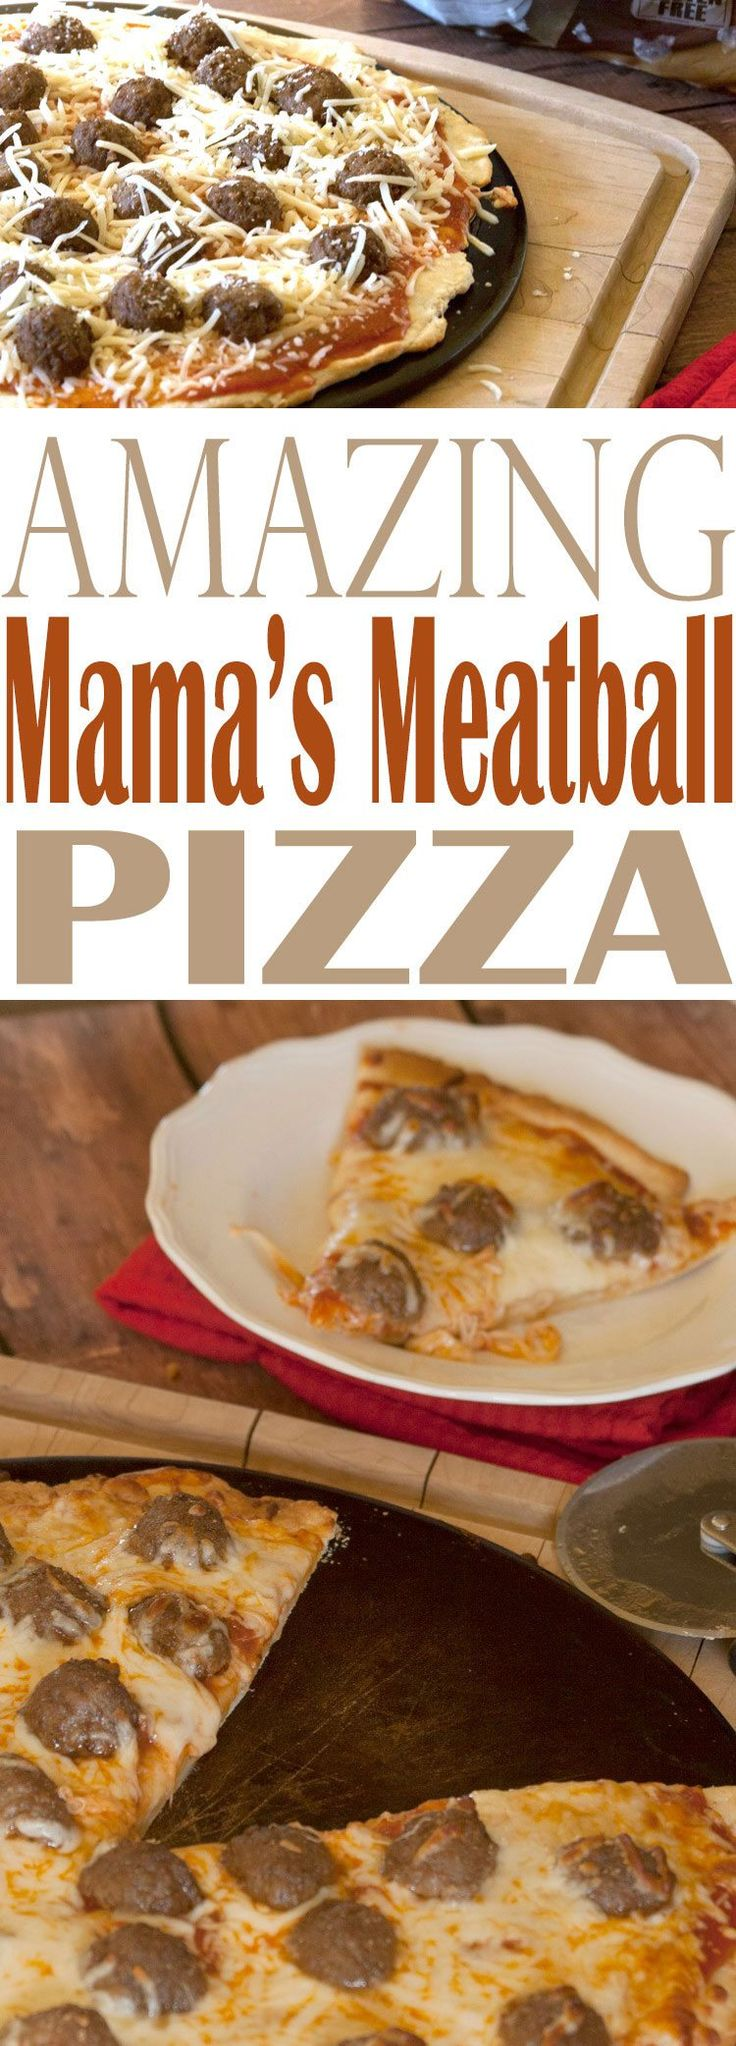 This is a super duper, easy meatball pizza that you can make as homemade or semi-homemade as you want. Get ready to put an easy weeknight meal on the table.